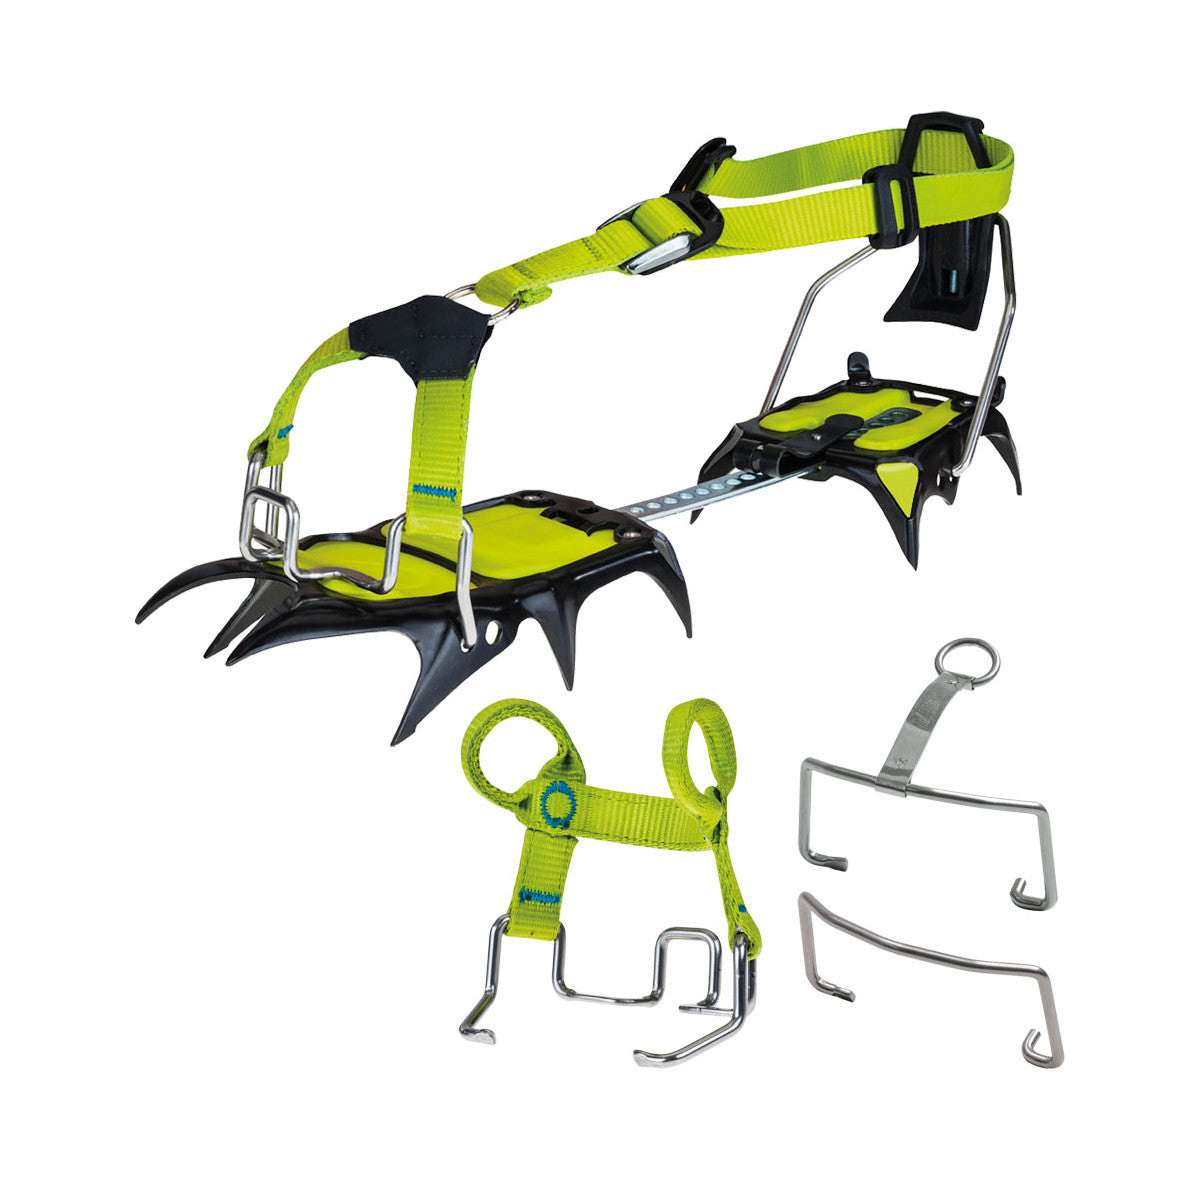 Edelrid Shark Crampon with accessories